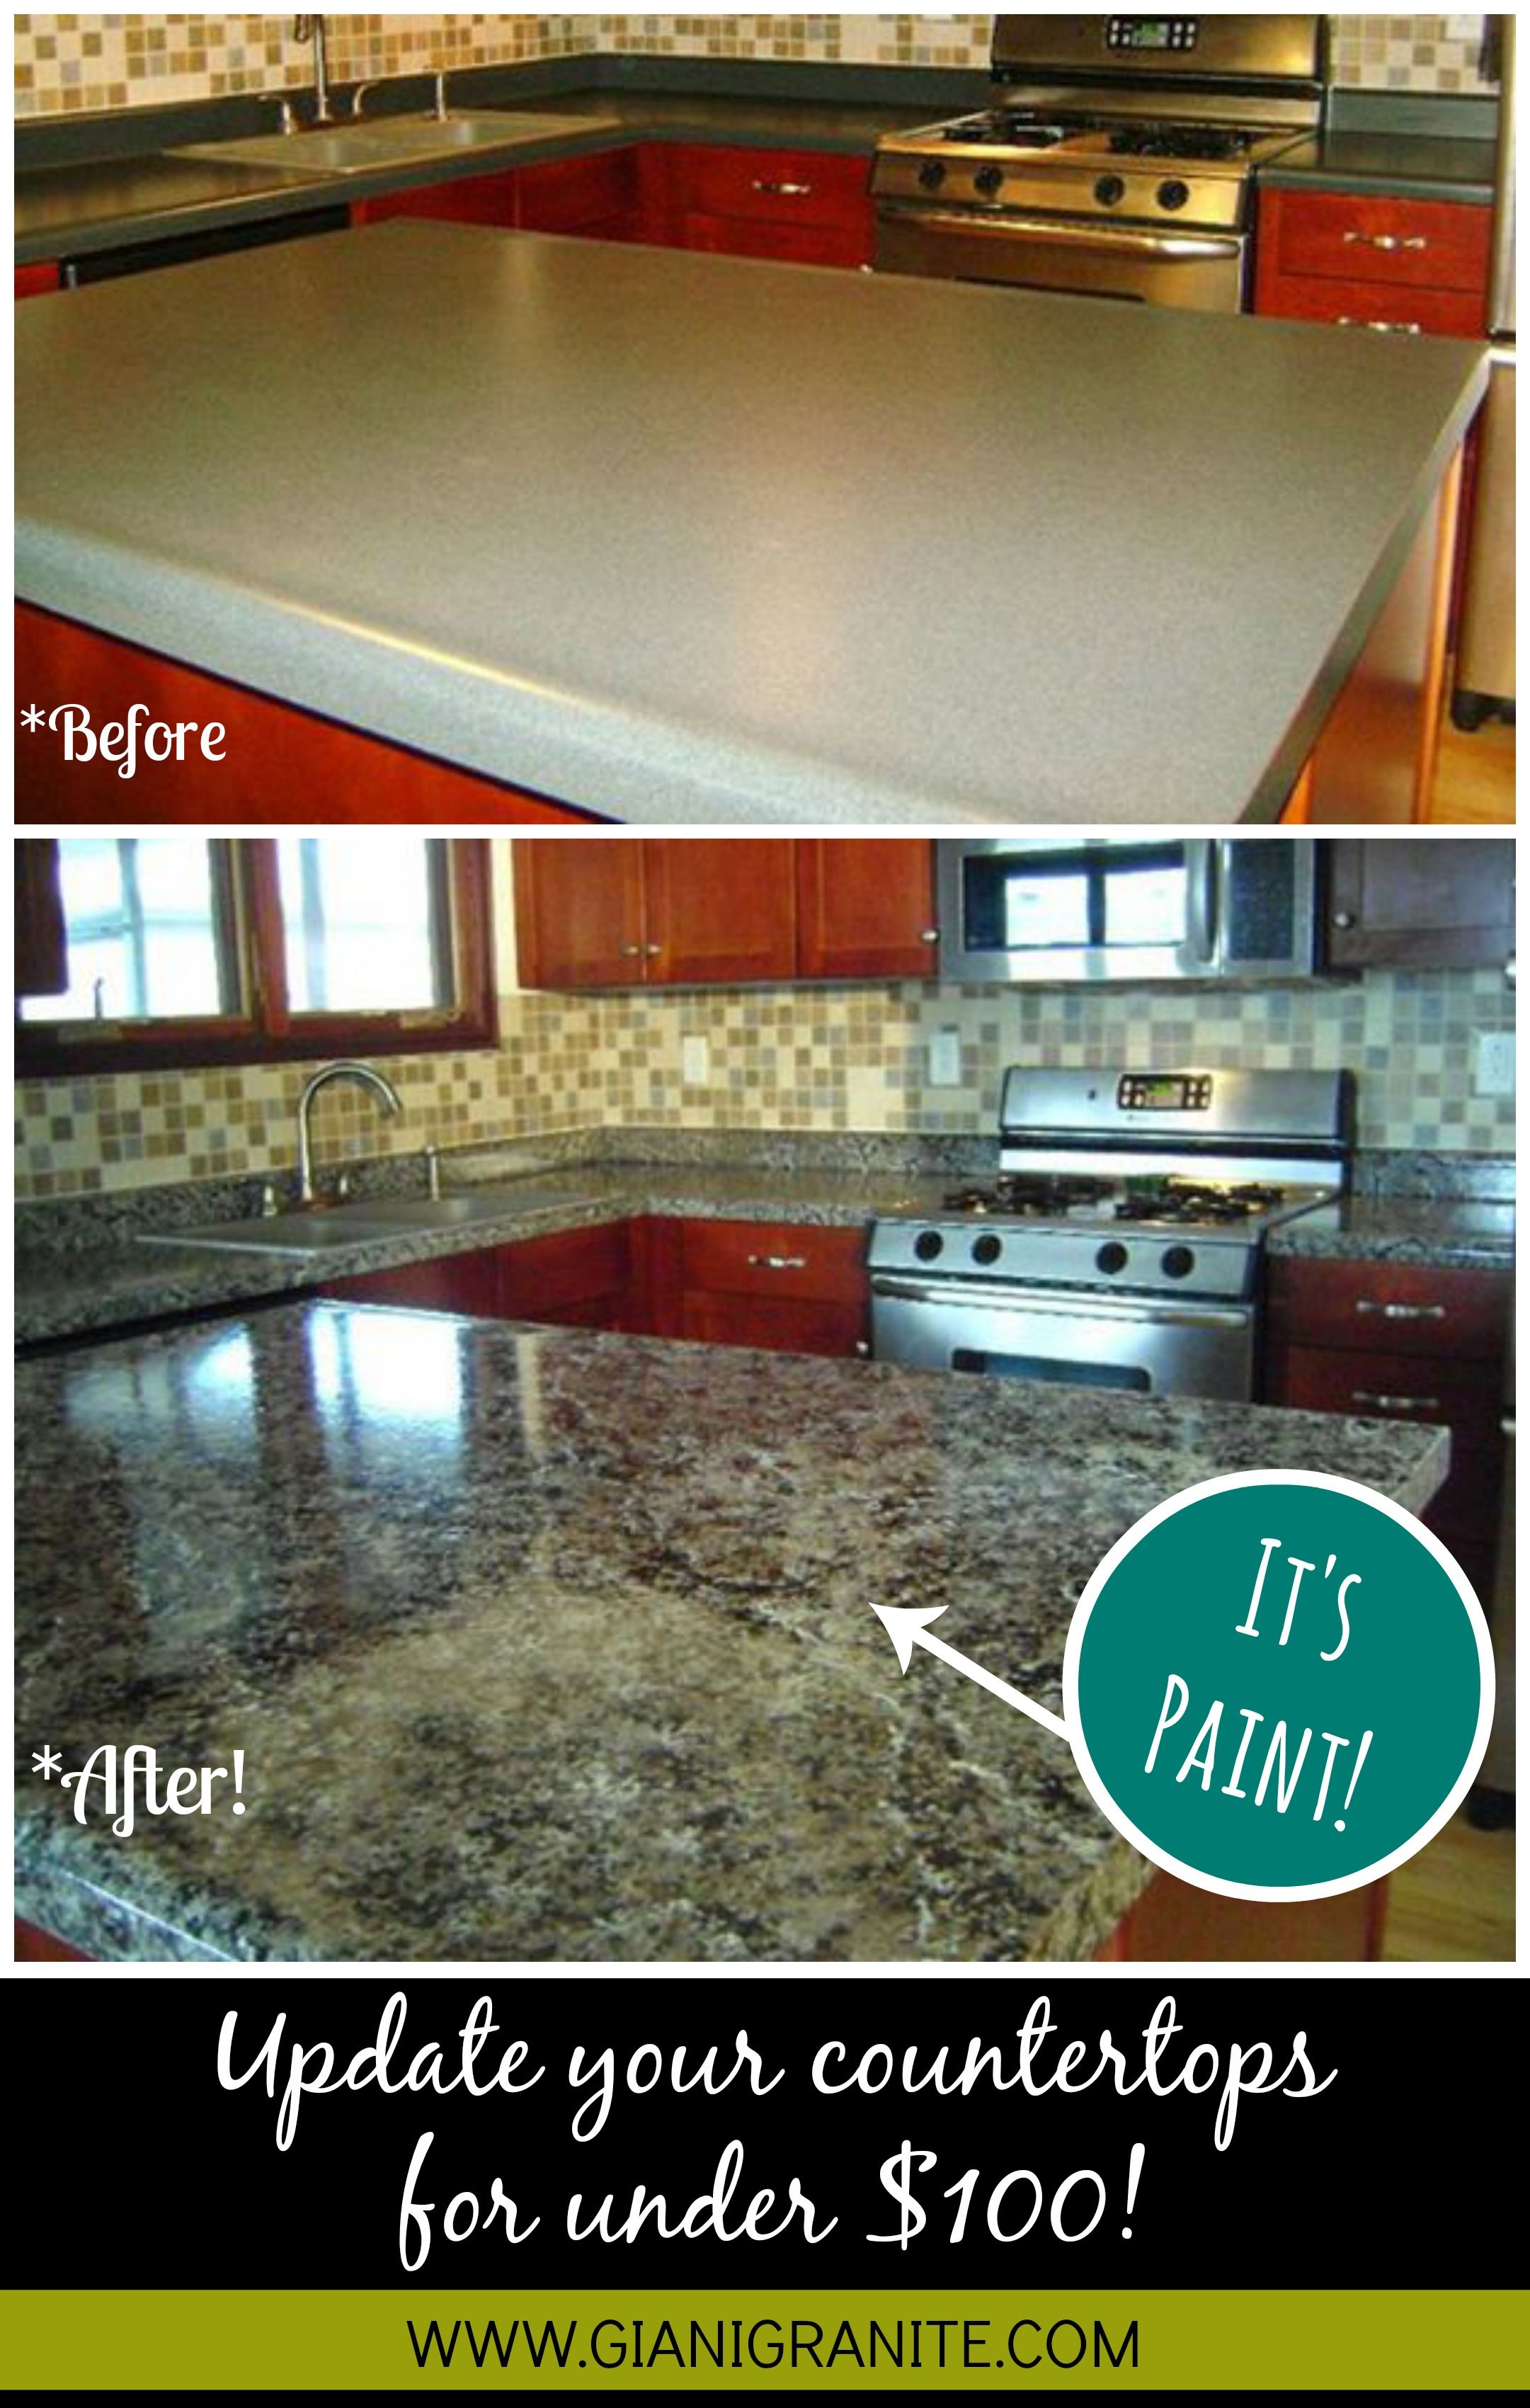 Superieur Affordable Countertop Makeover. Paint That Looks Like Granite! #DIY  Www.gianigranite.com Countertop Paint!